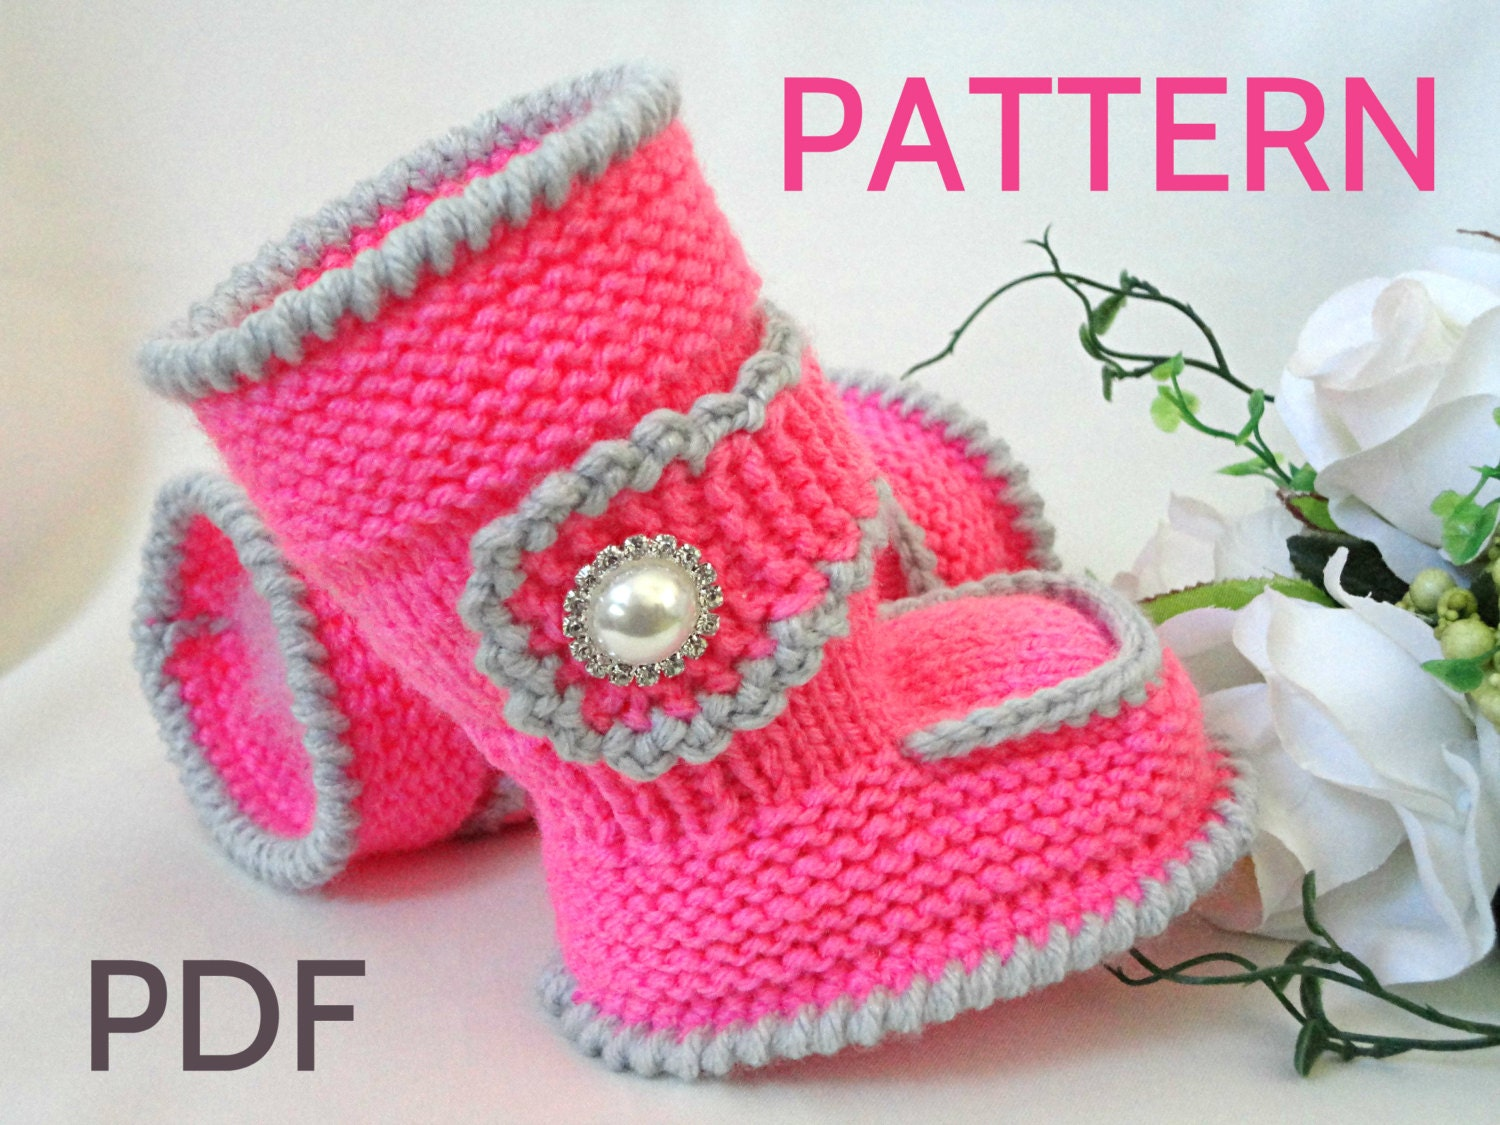 Knitting Designs Baby Shoes : Knitting pattern baby booties shoes knitted by